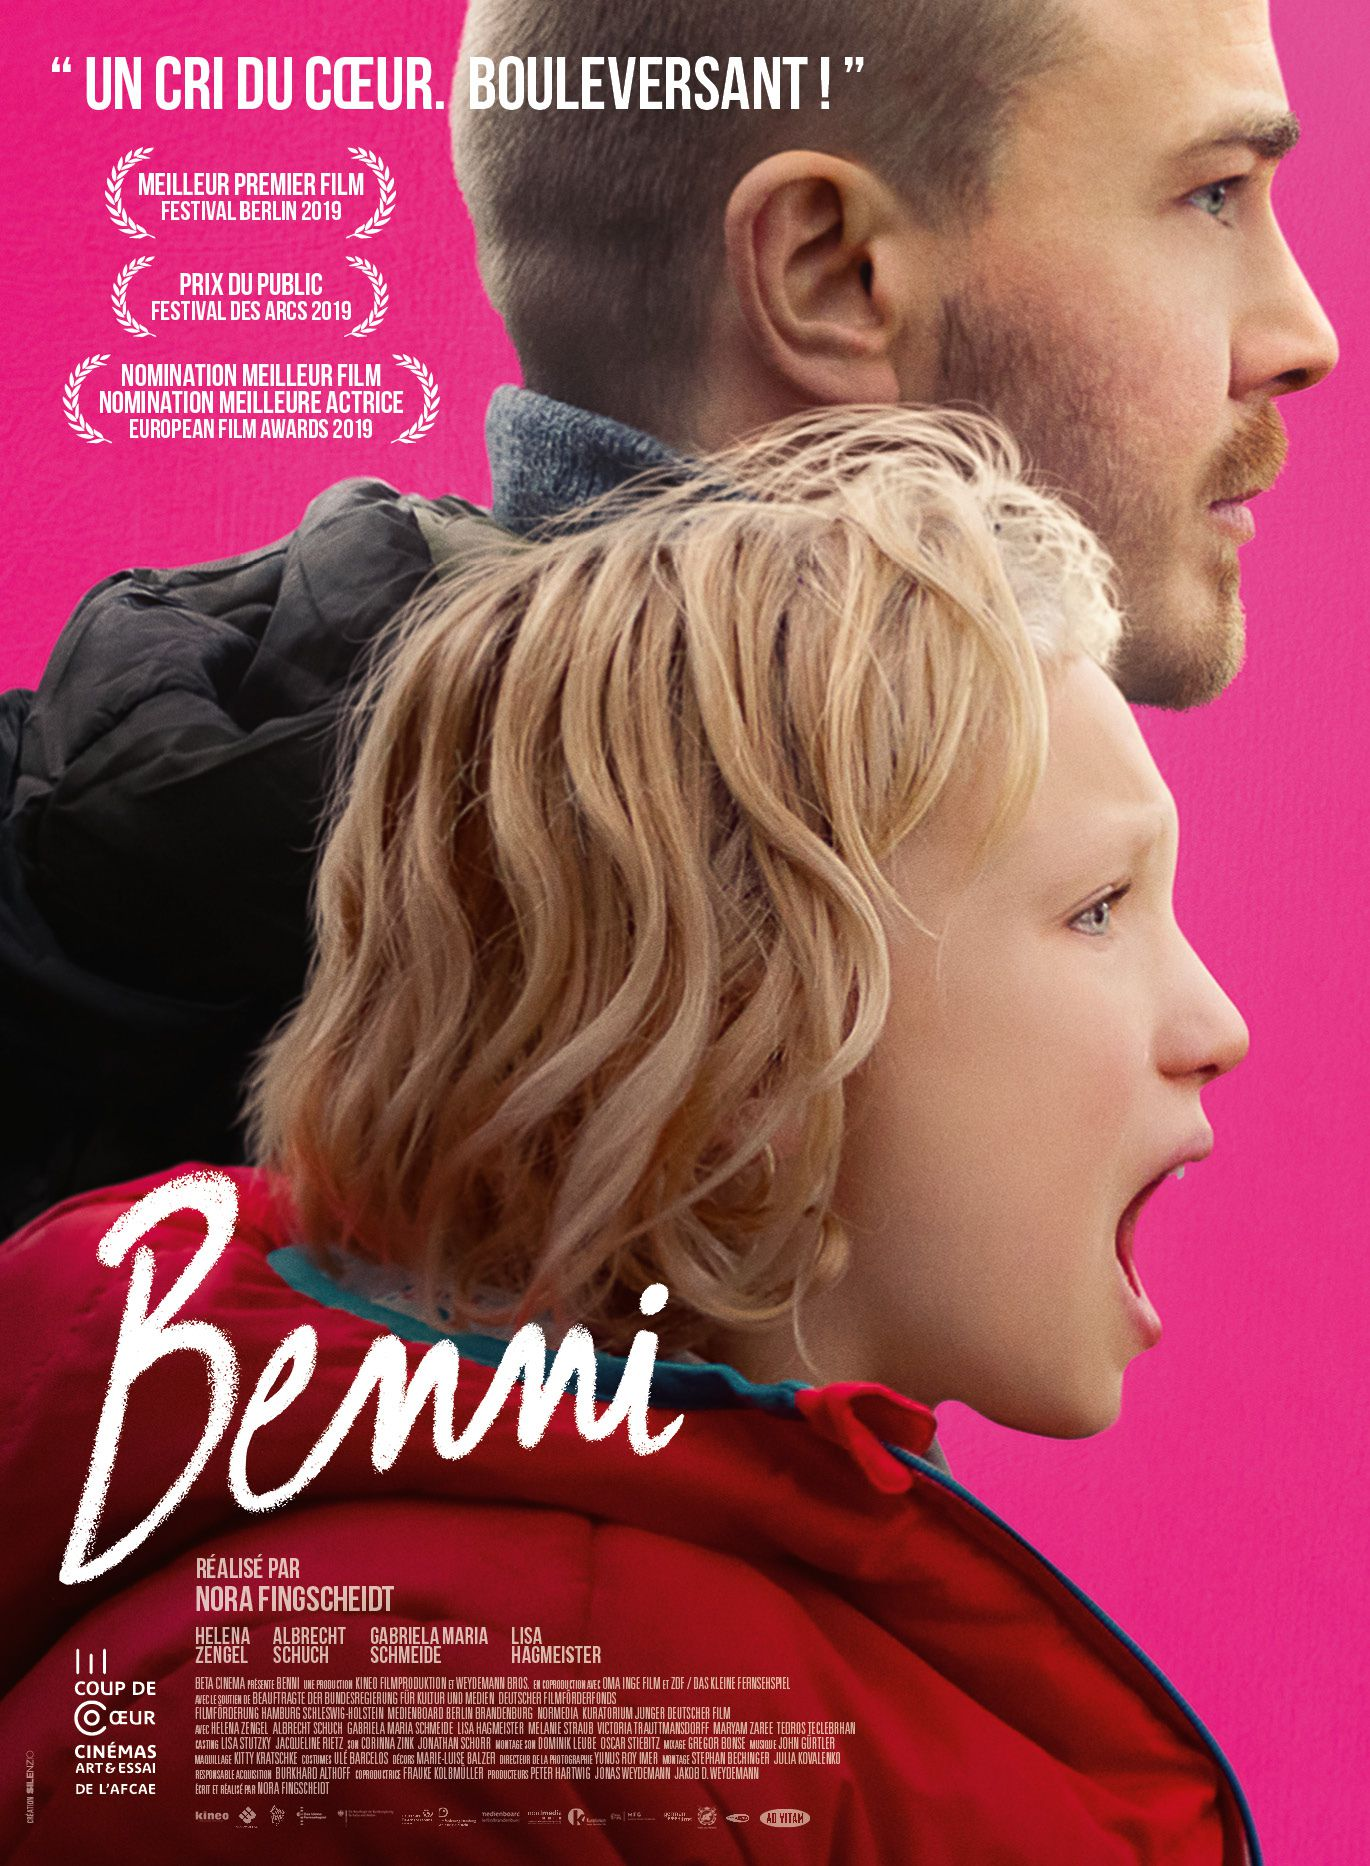 Benni - Film (2020) streaming VF gratuit complet